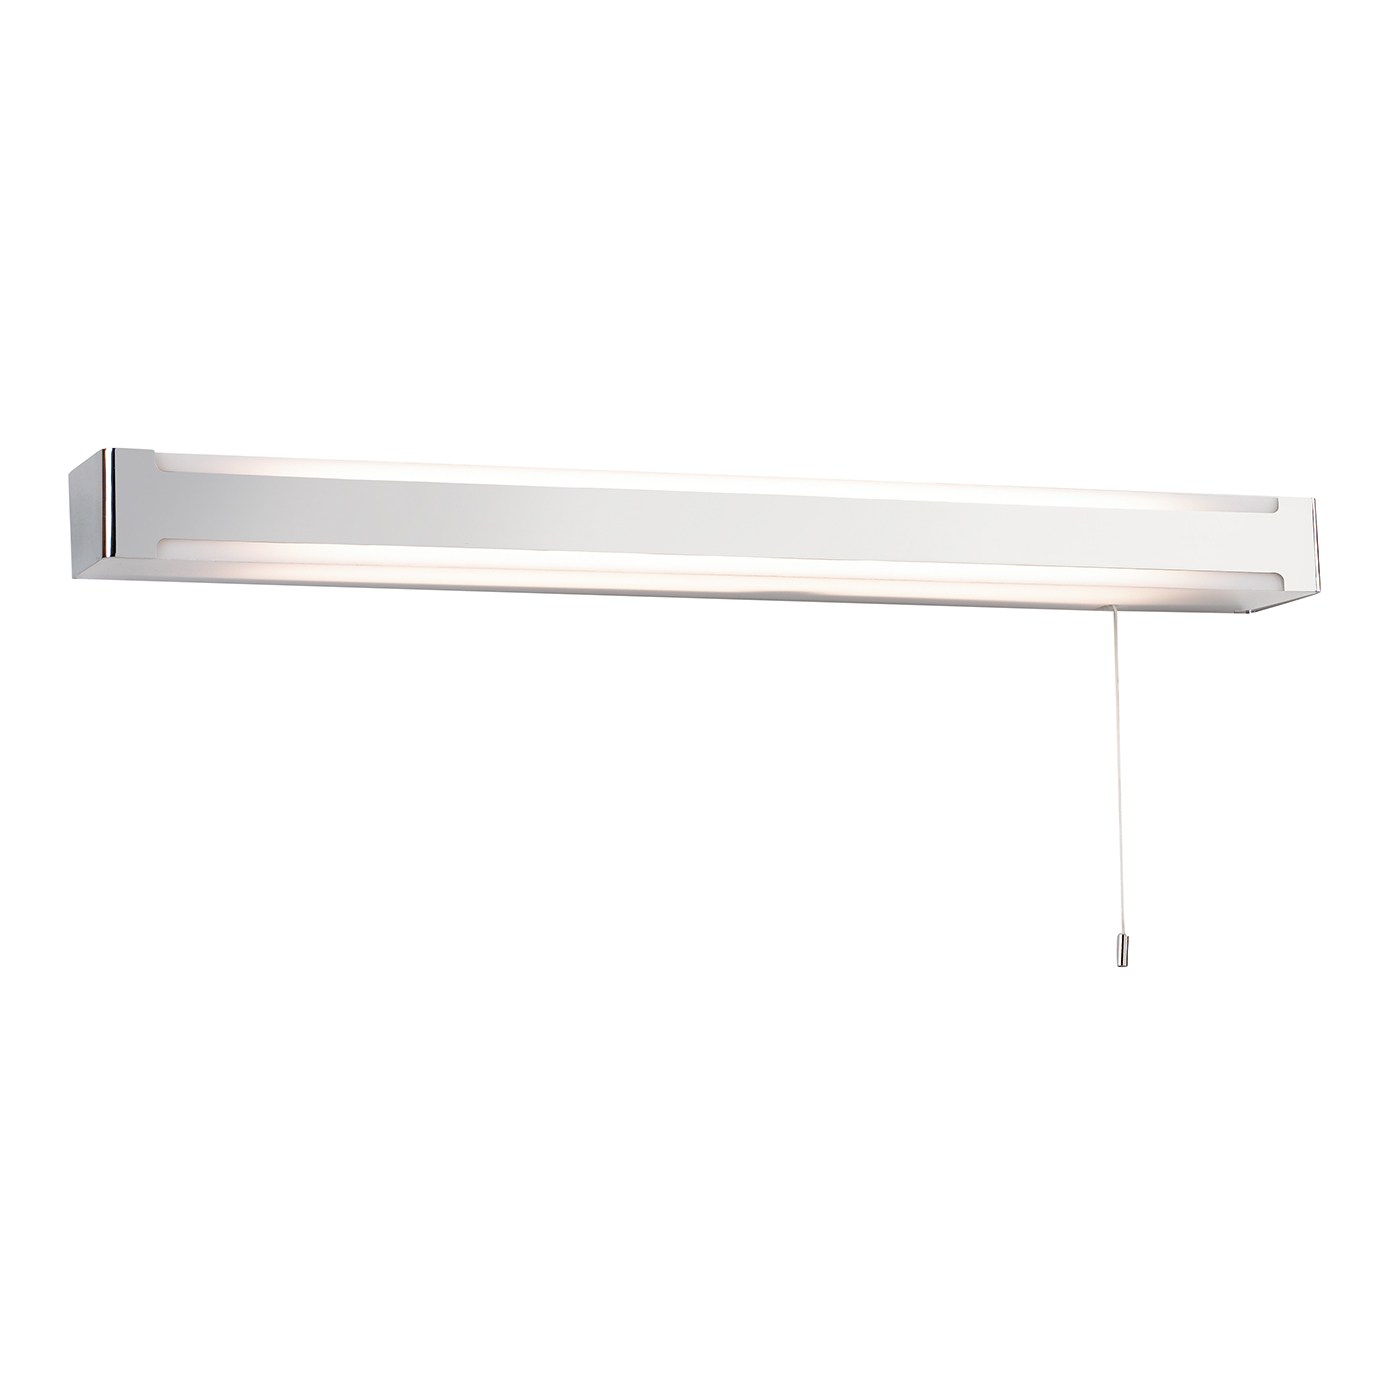 Endon Seval 1lt bathroom wall light HF IP44 14W Chrome & white acrylic pull cord Thumbnail 1